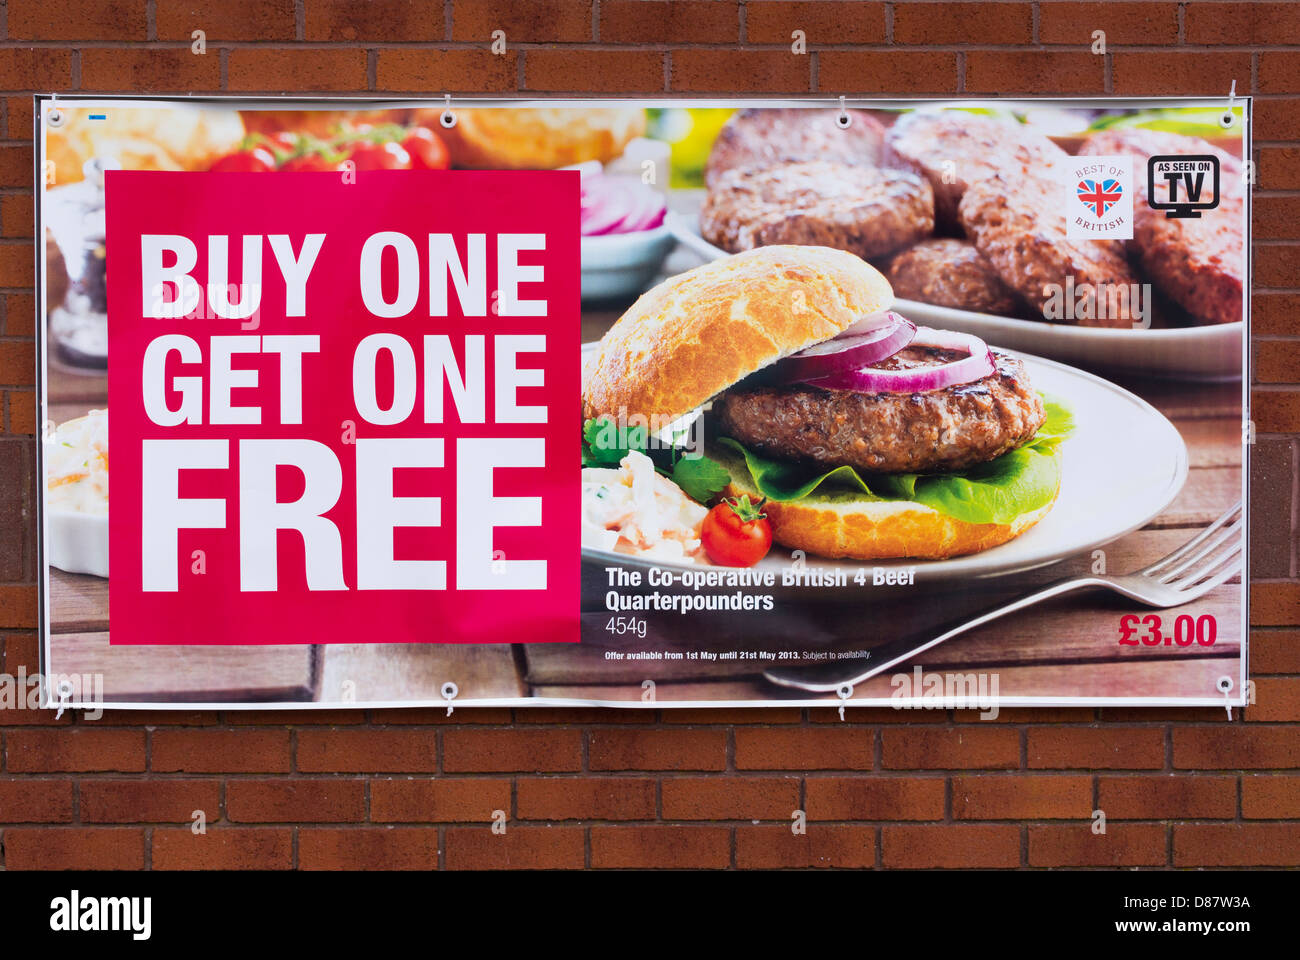 Buy one get one free food deal for cheap burgers on a for Buy posters online cheap